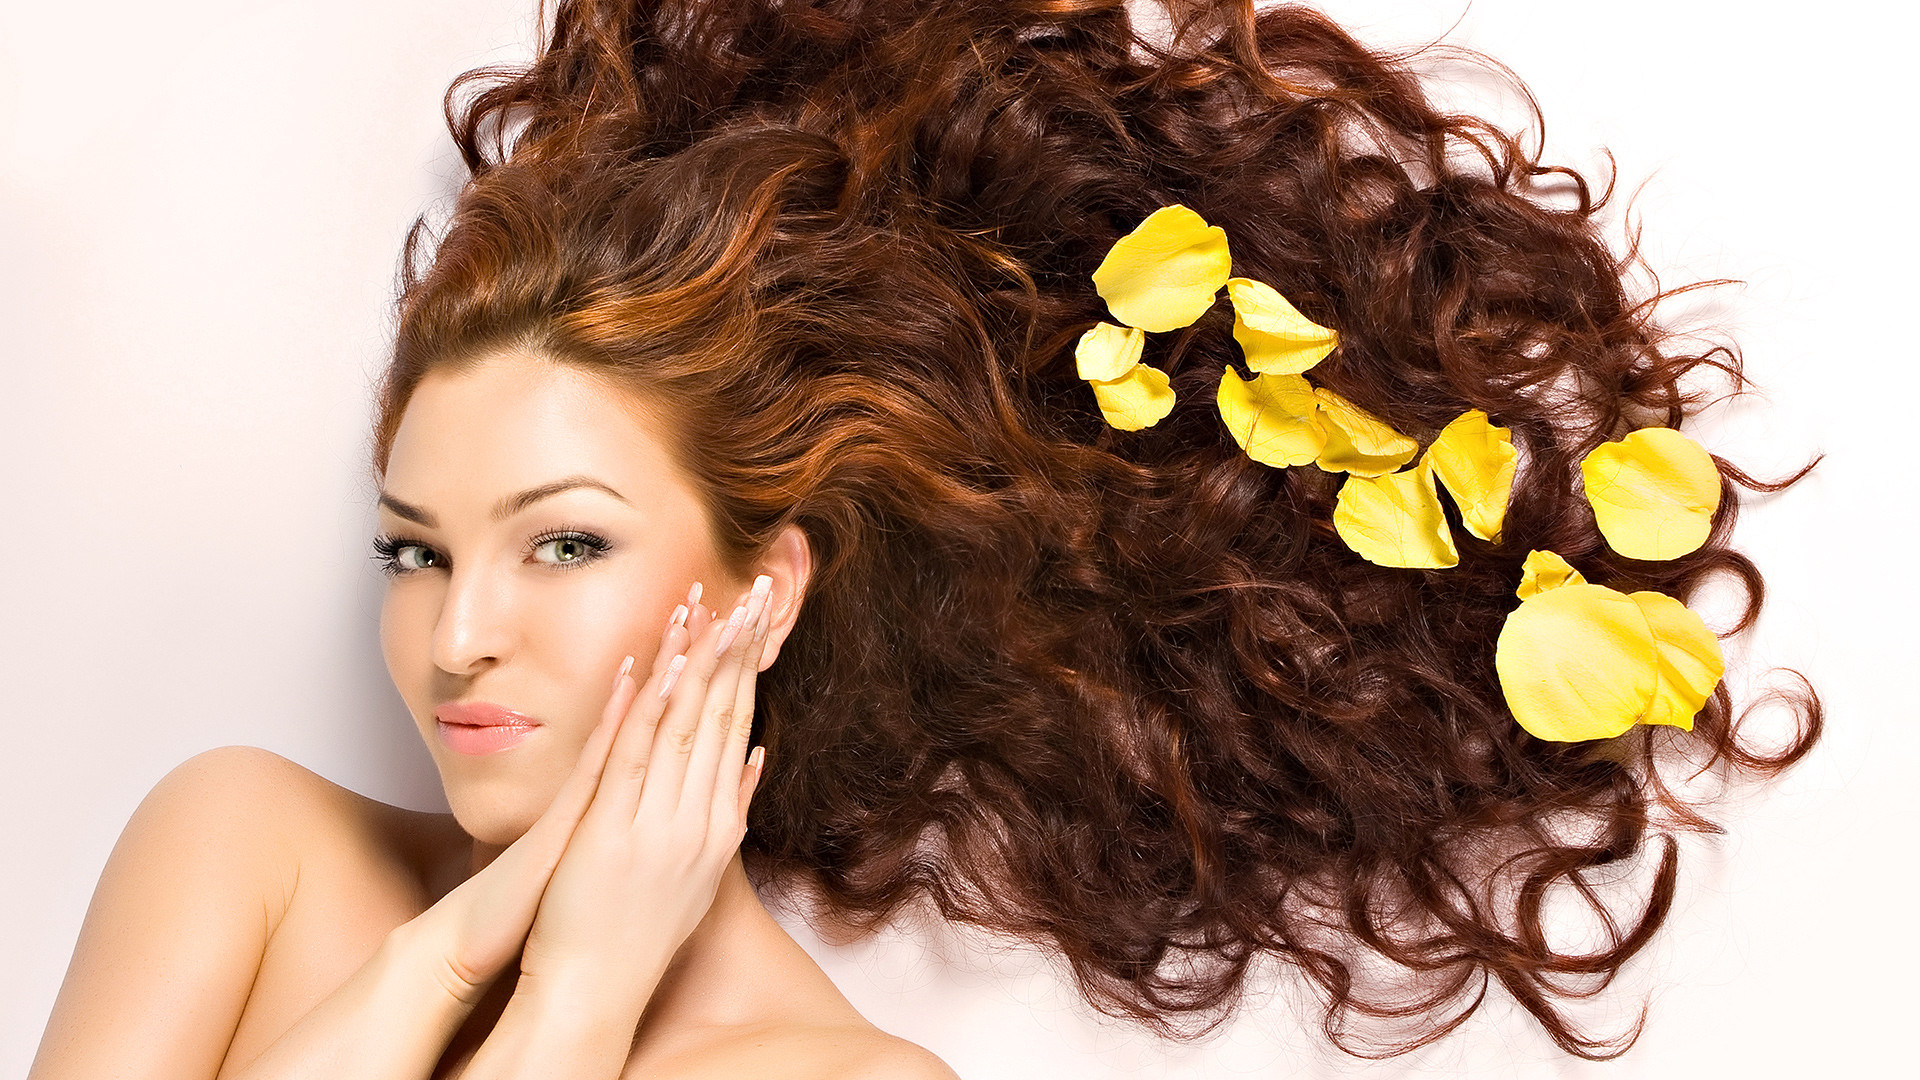 1920x1080 Pin Wallpaper Designs Hair Salons Hdr Beauty Salon 1920x1200 on .